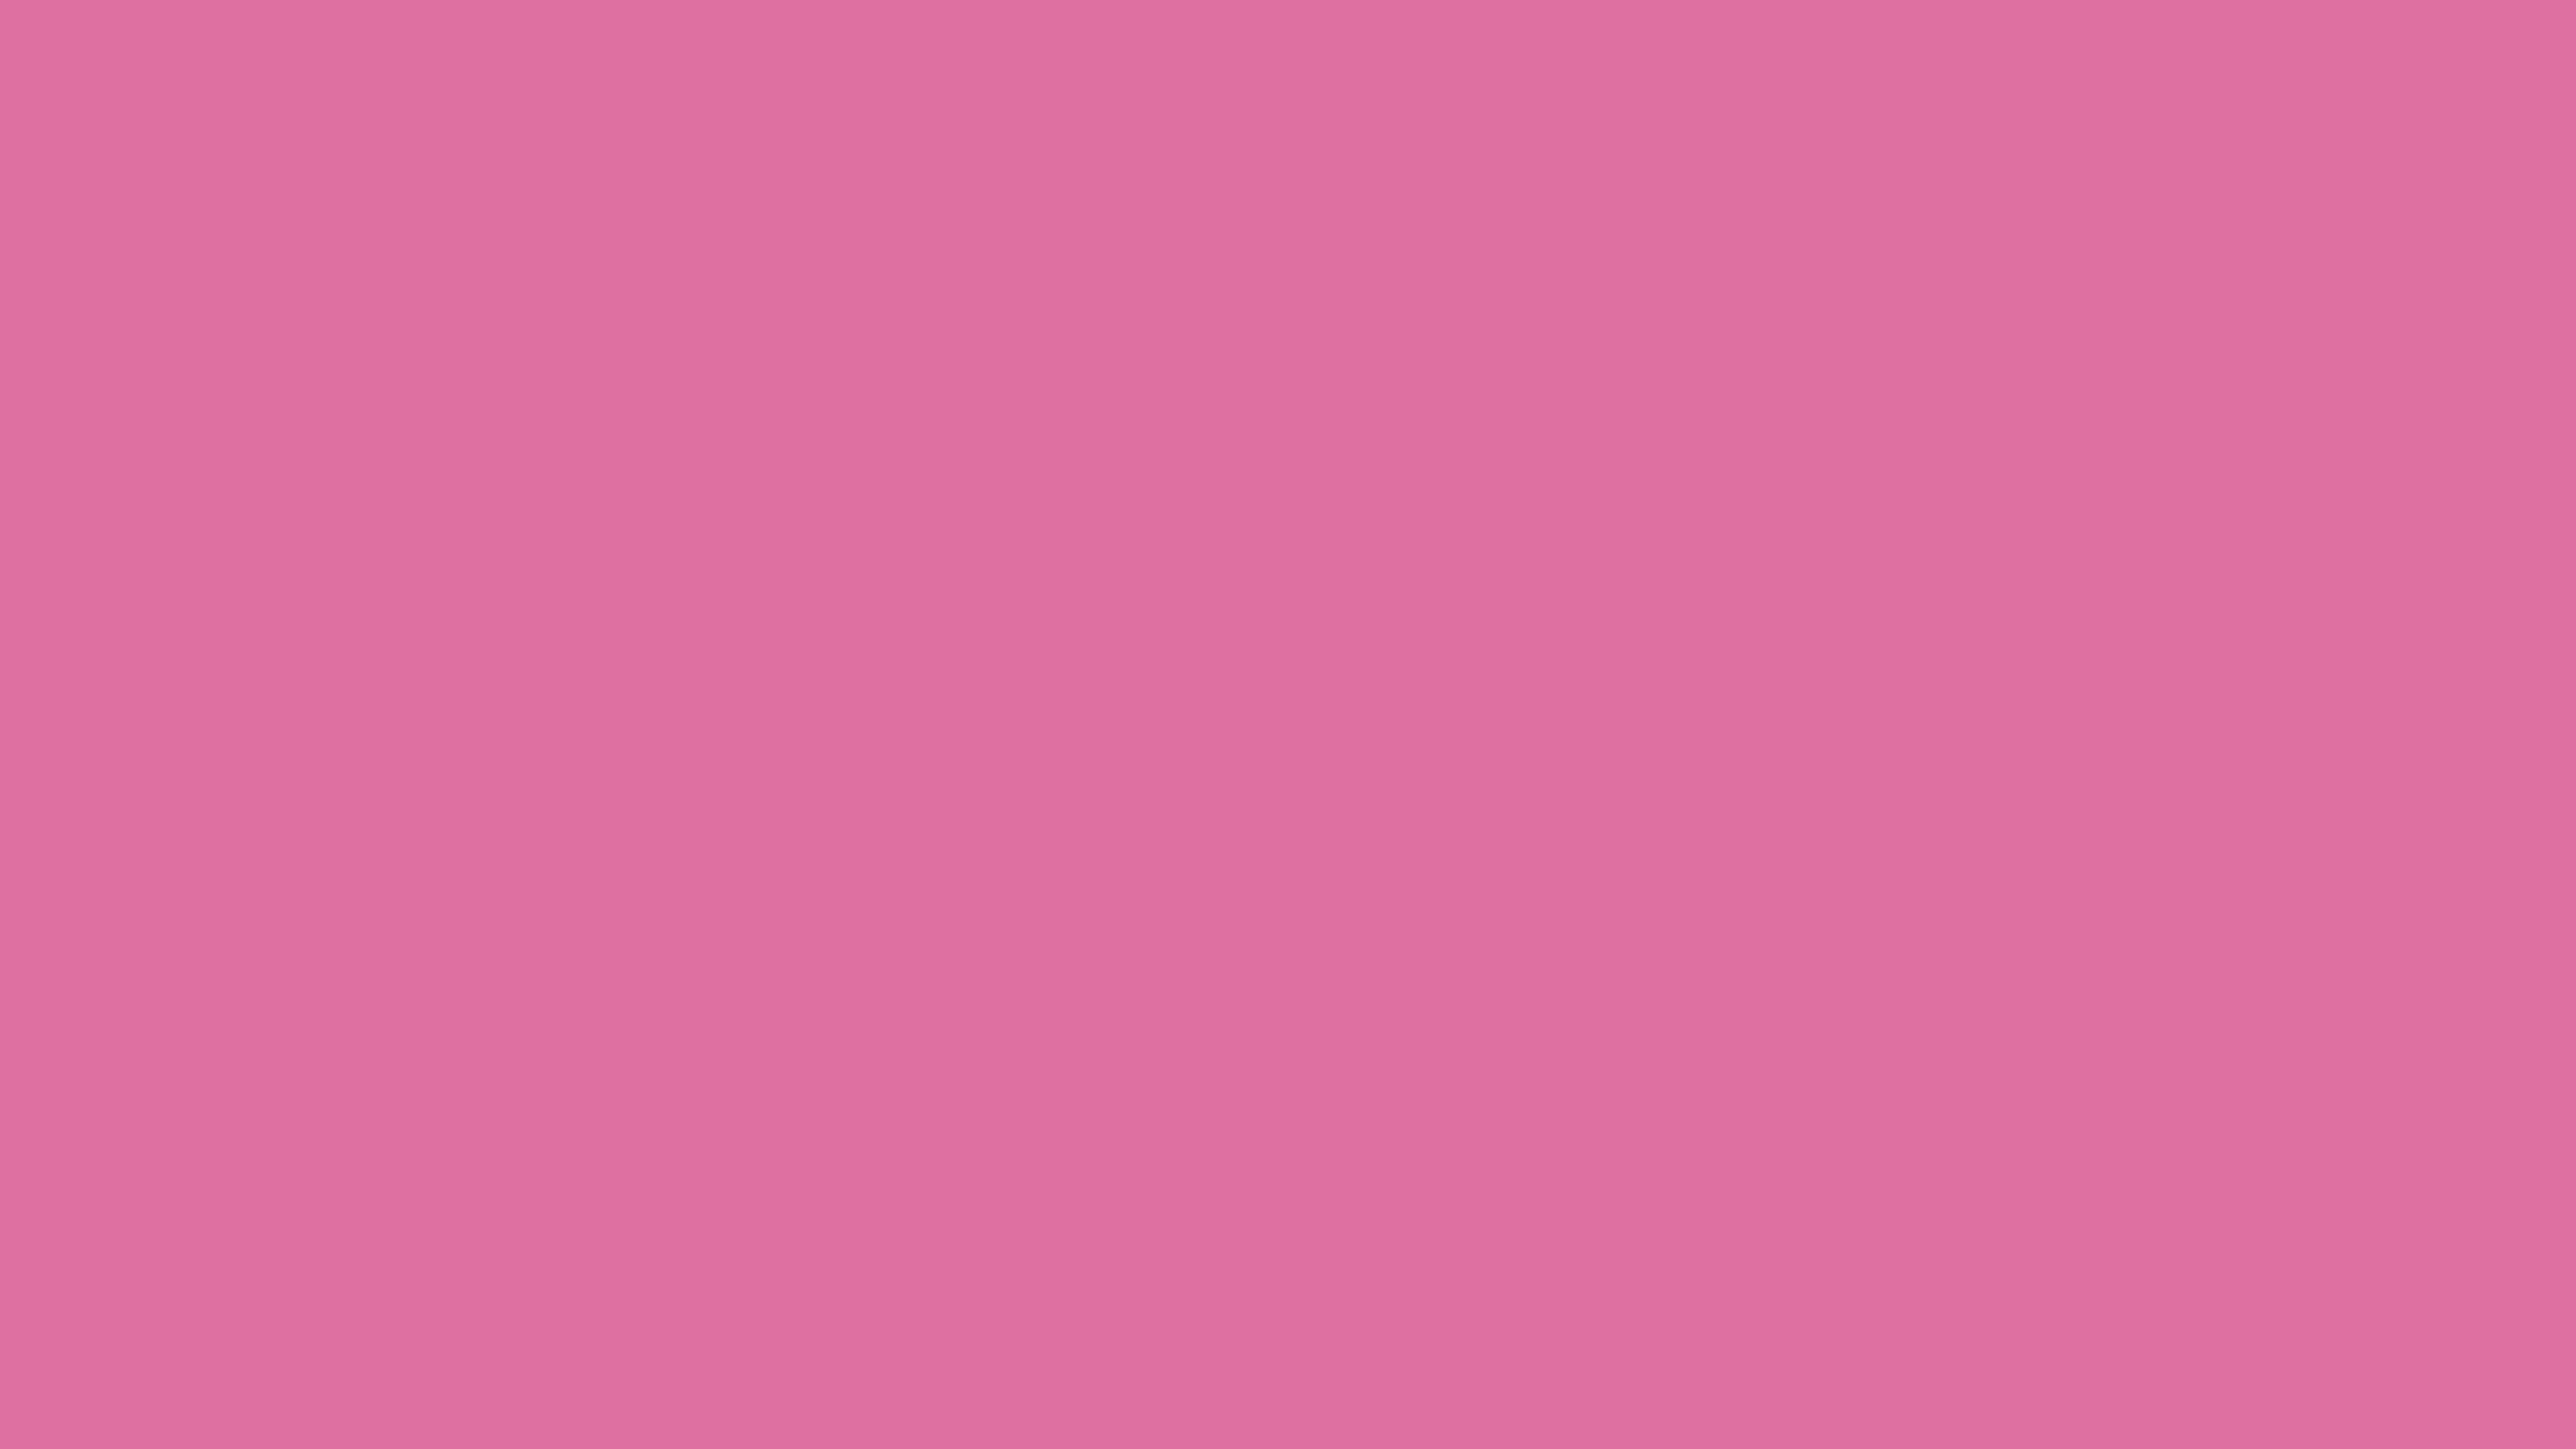 7680x4320 Thulian Pink Solid Color Background